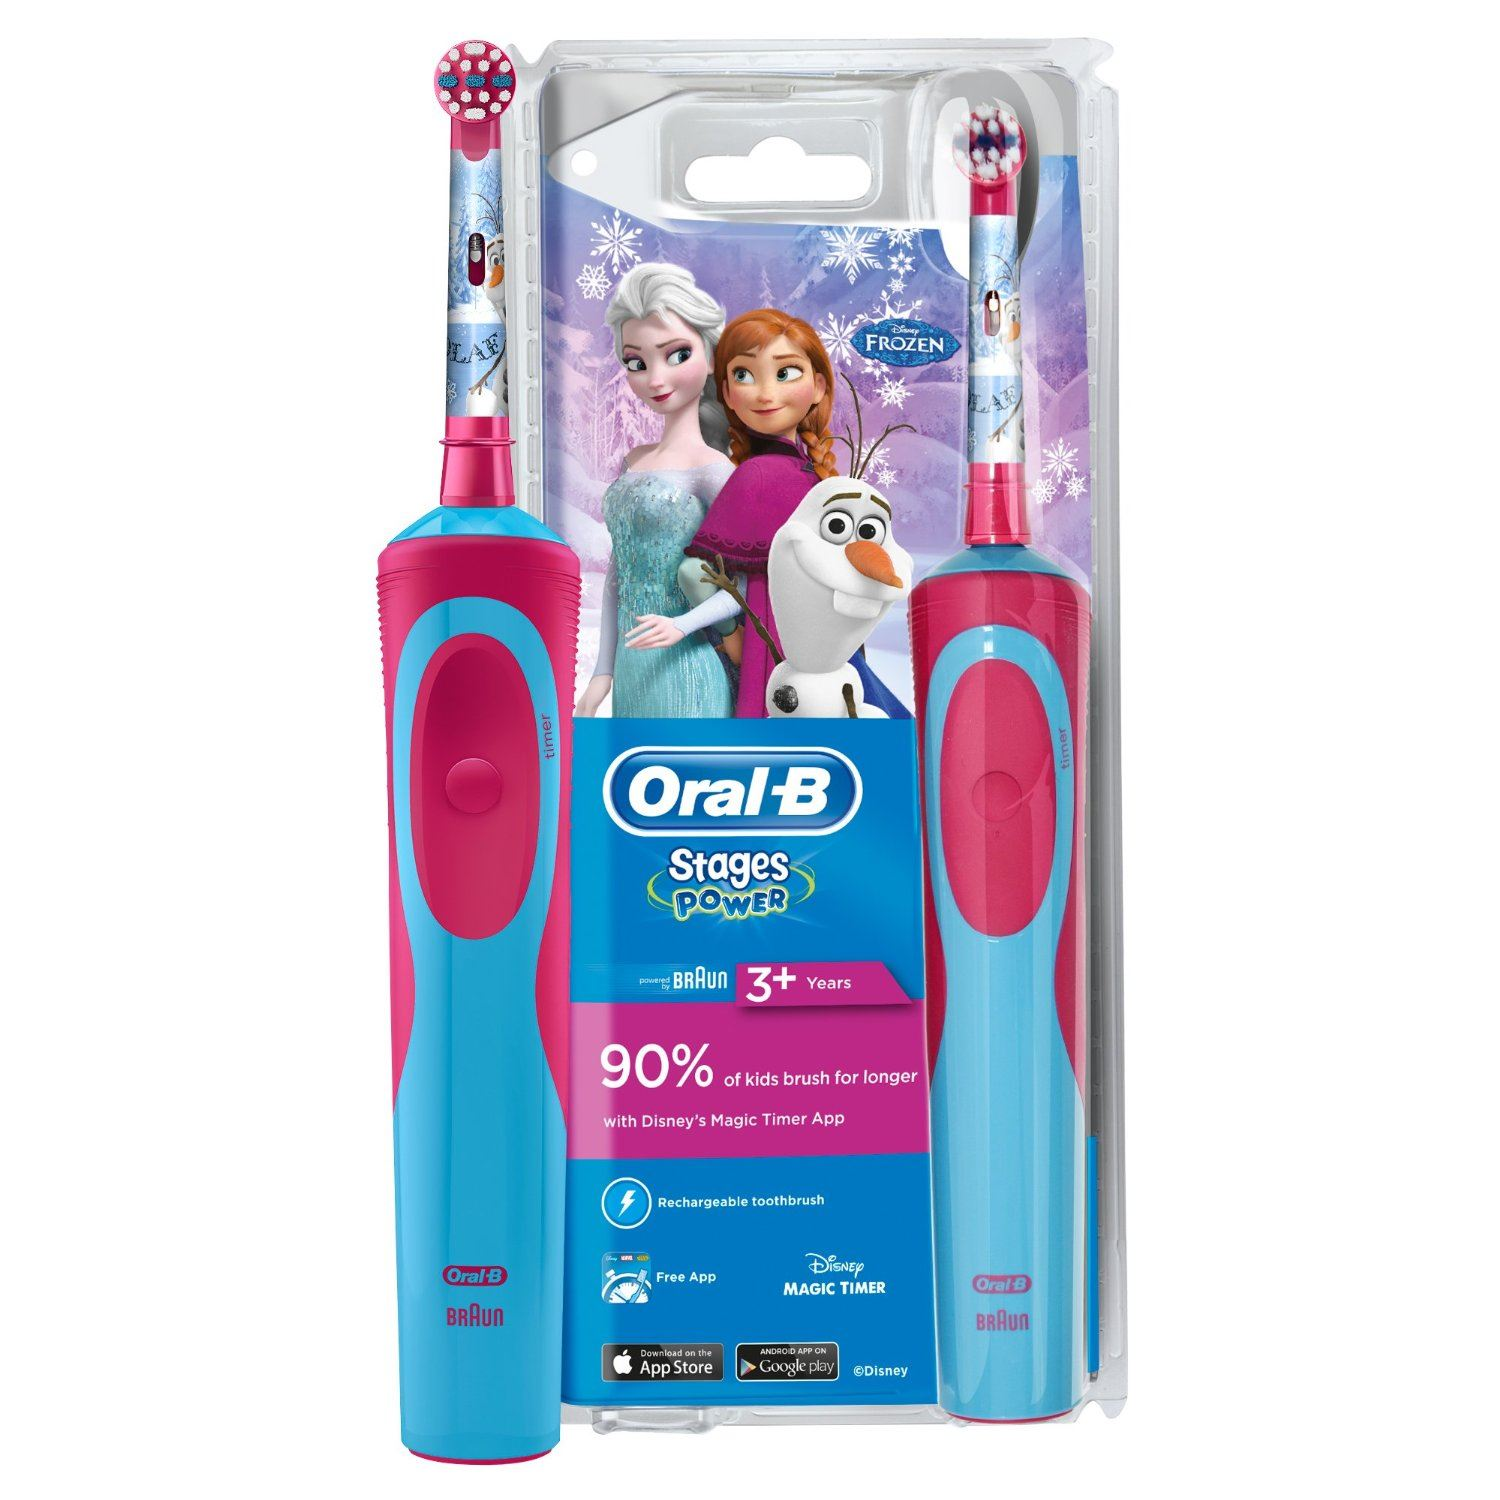 Details about Braun Oral B Stages Power Kids Electric Rechargeable Toothbrush Disney Frozen